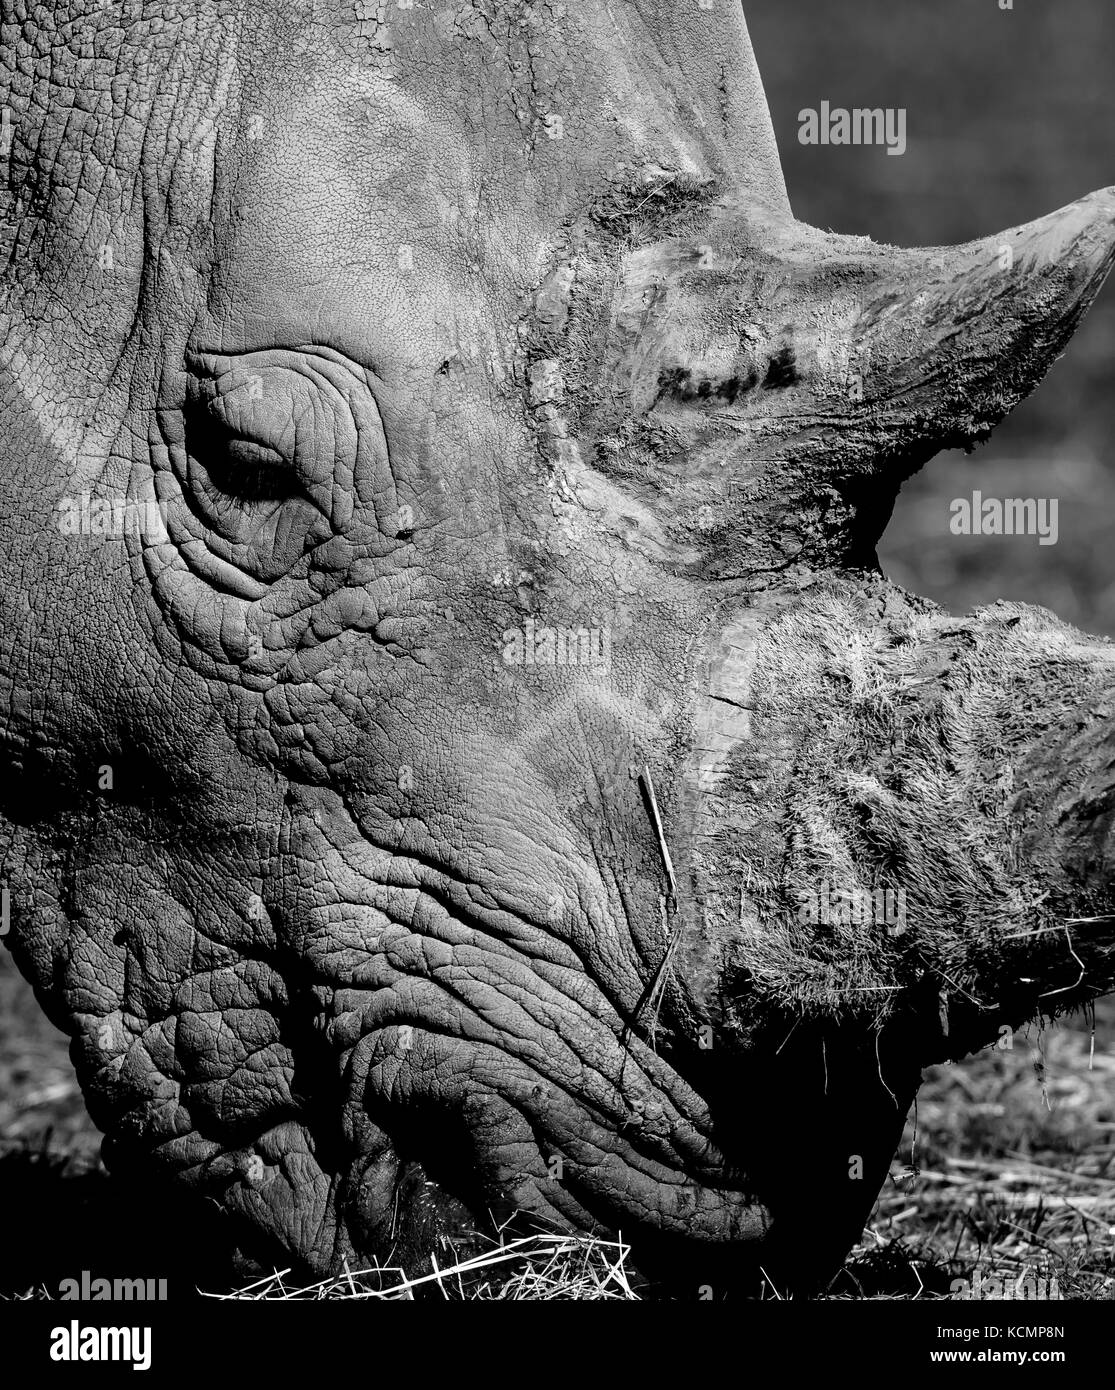 Close up of Southern White rhinoceros face (Ceratotherium simum) outside in sunshine, Cotswold Wildlife Park. Arty, Stock Photo